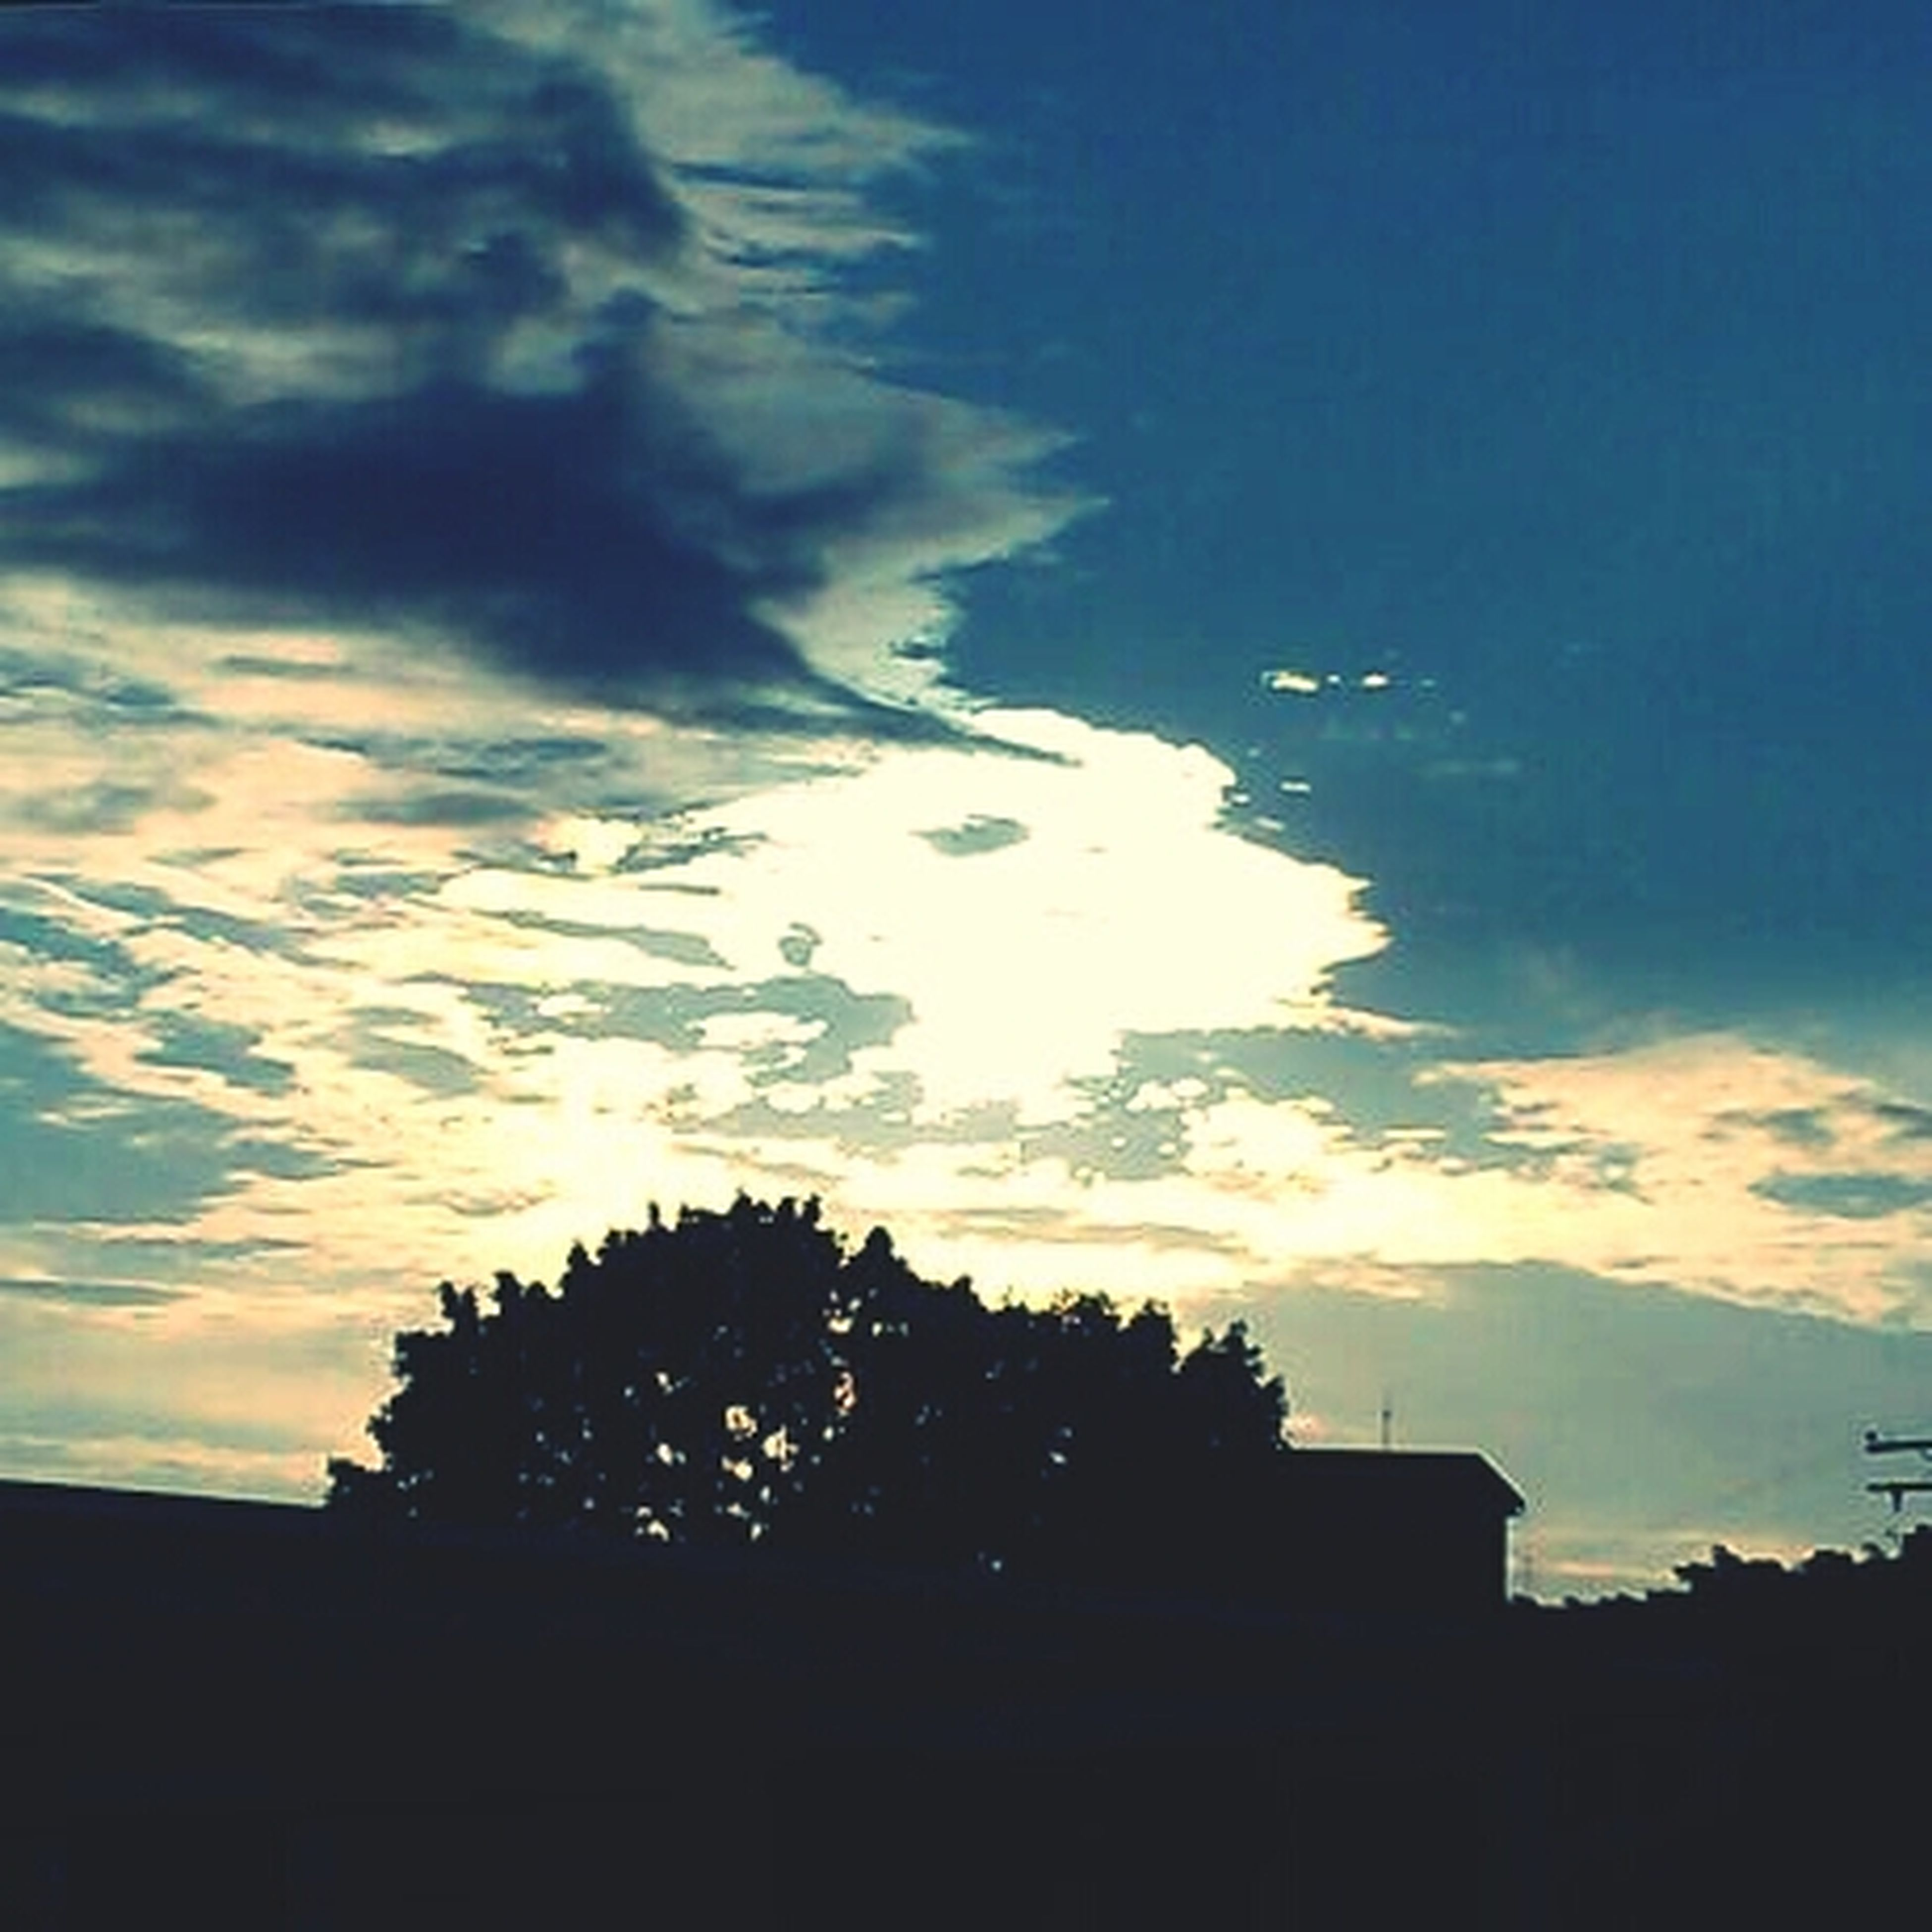 silhouette, sky, low angle view, building exterior, built structure, architecture, sunset, cloud - sky, tree, cloud, blue, dusk, nature, outdoors, house, building, cloudy, no people, beauty in nature, sunlight